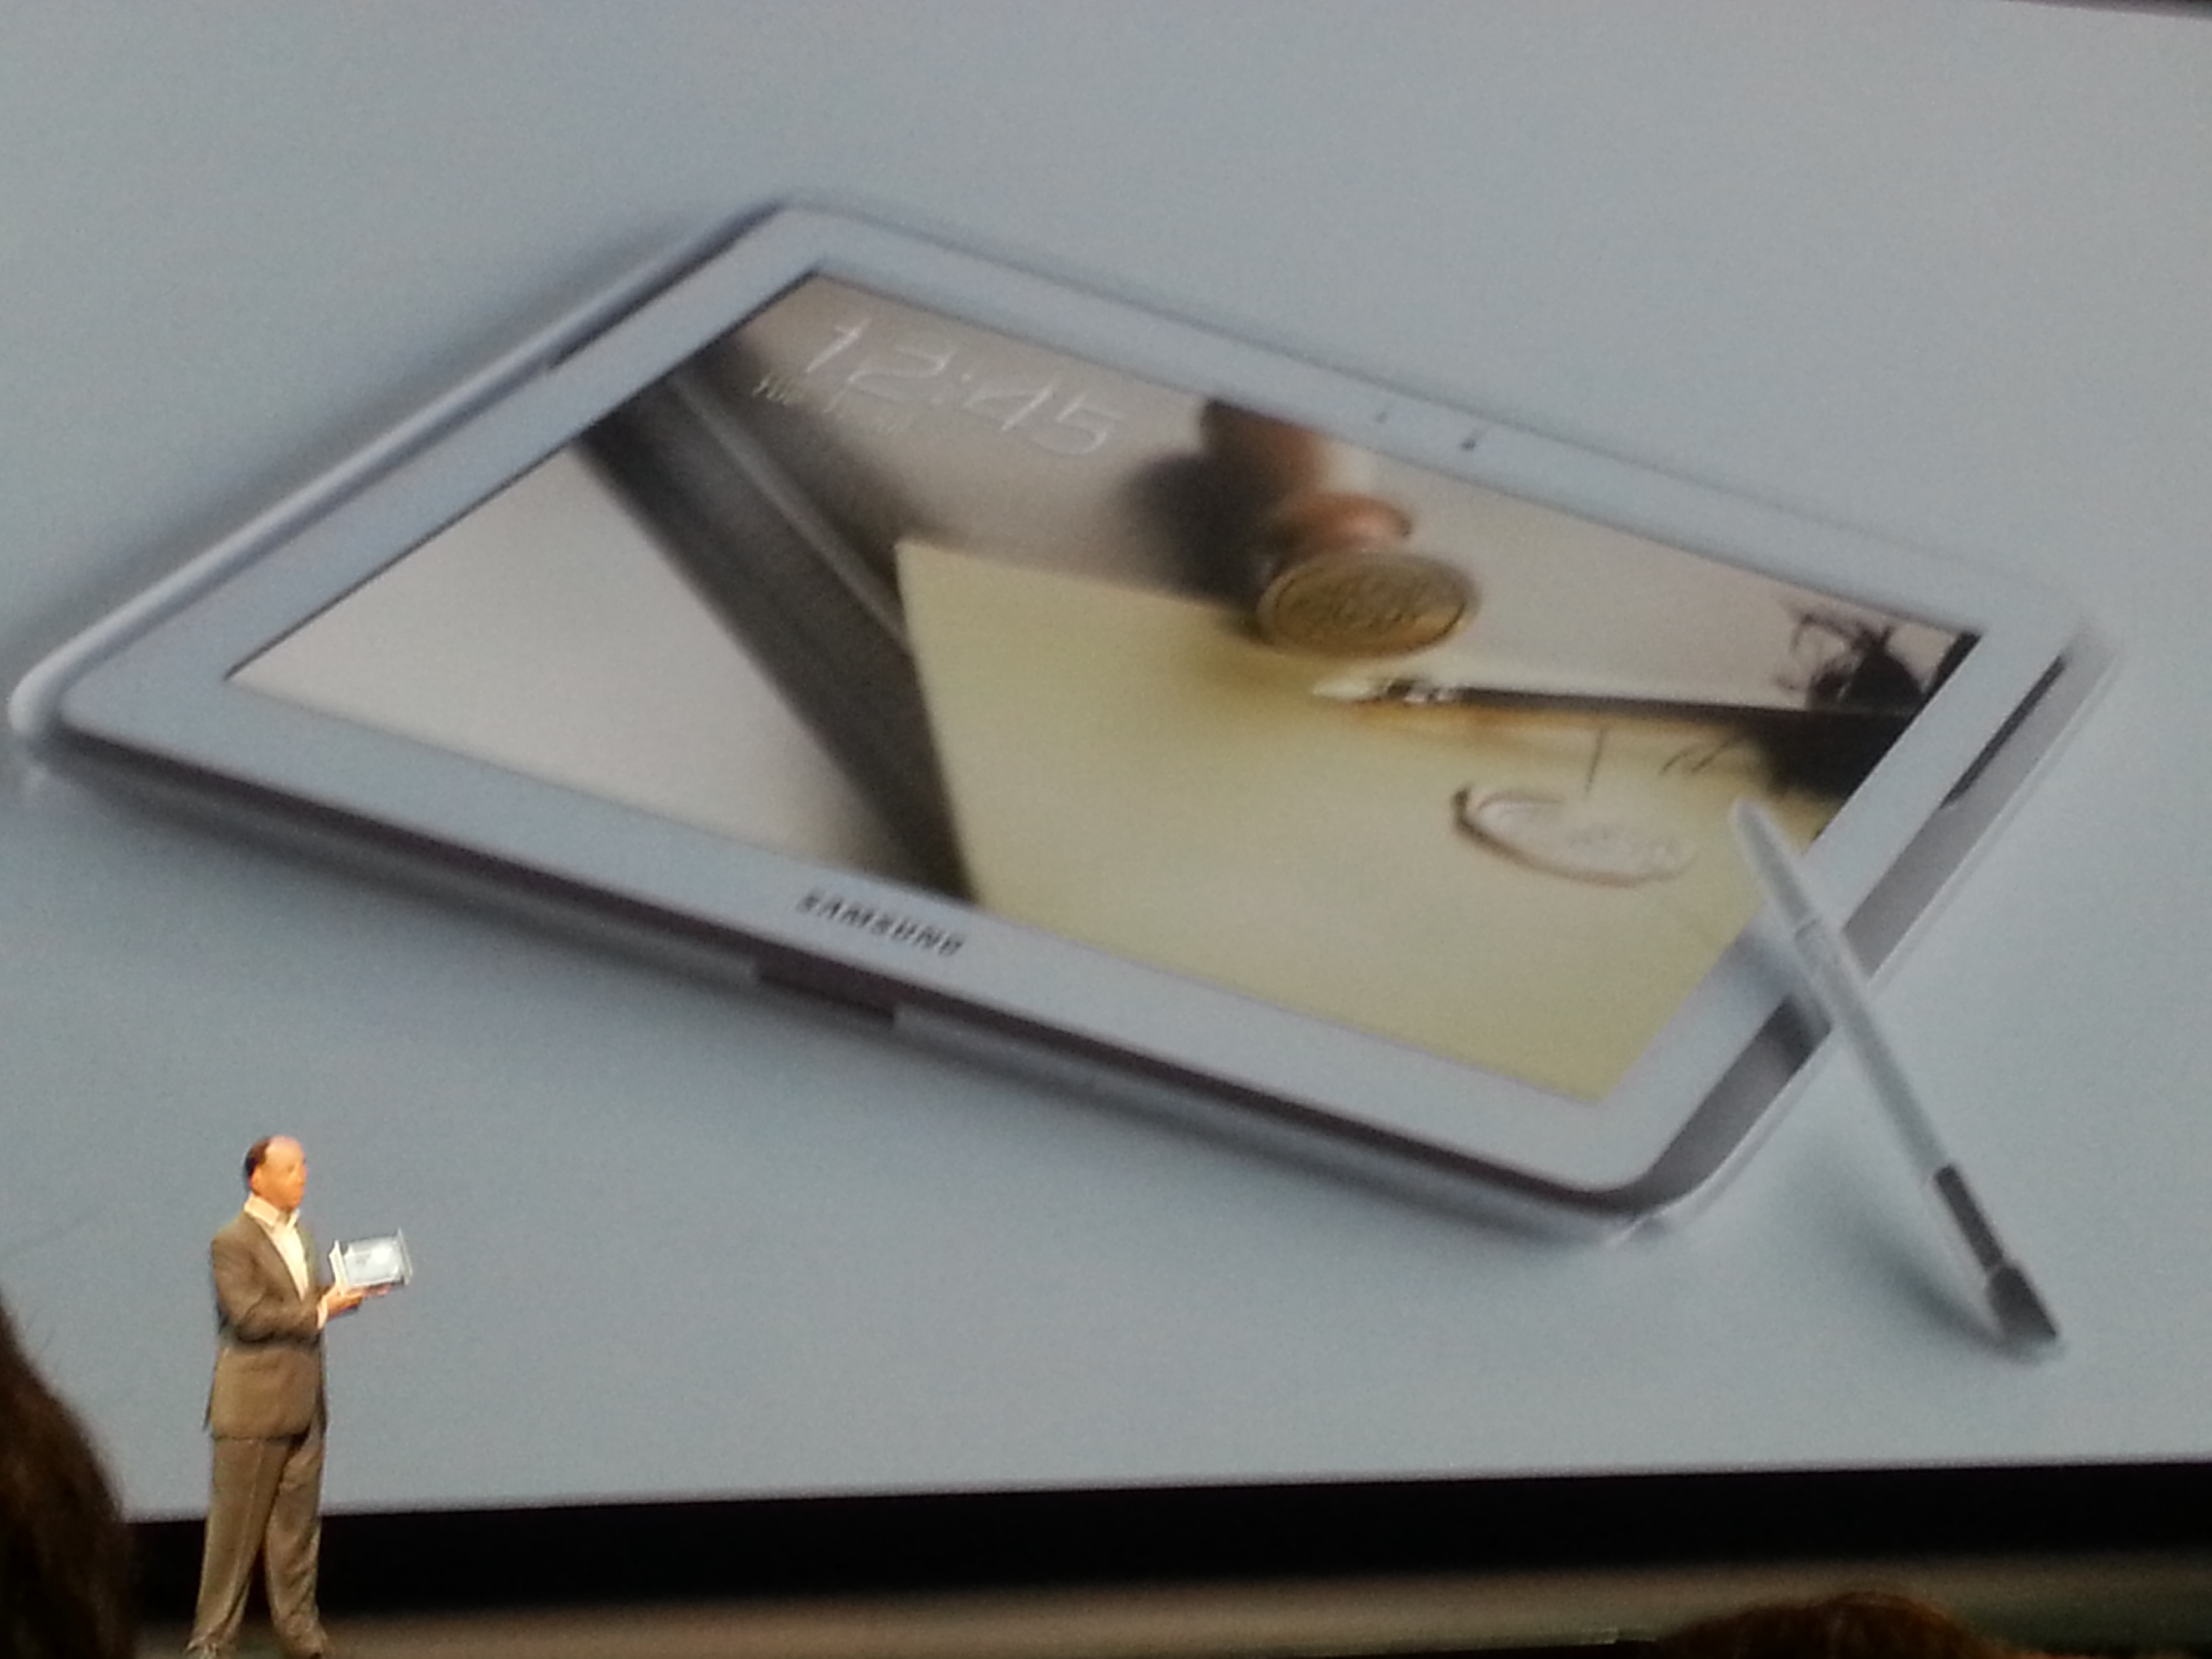 Samsung Galaxy Note 10.1 Launch Picture